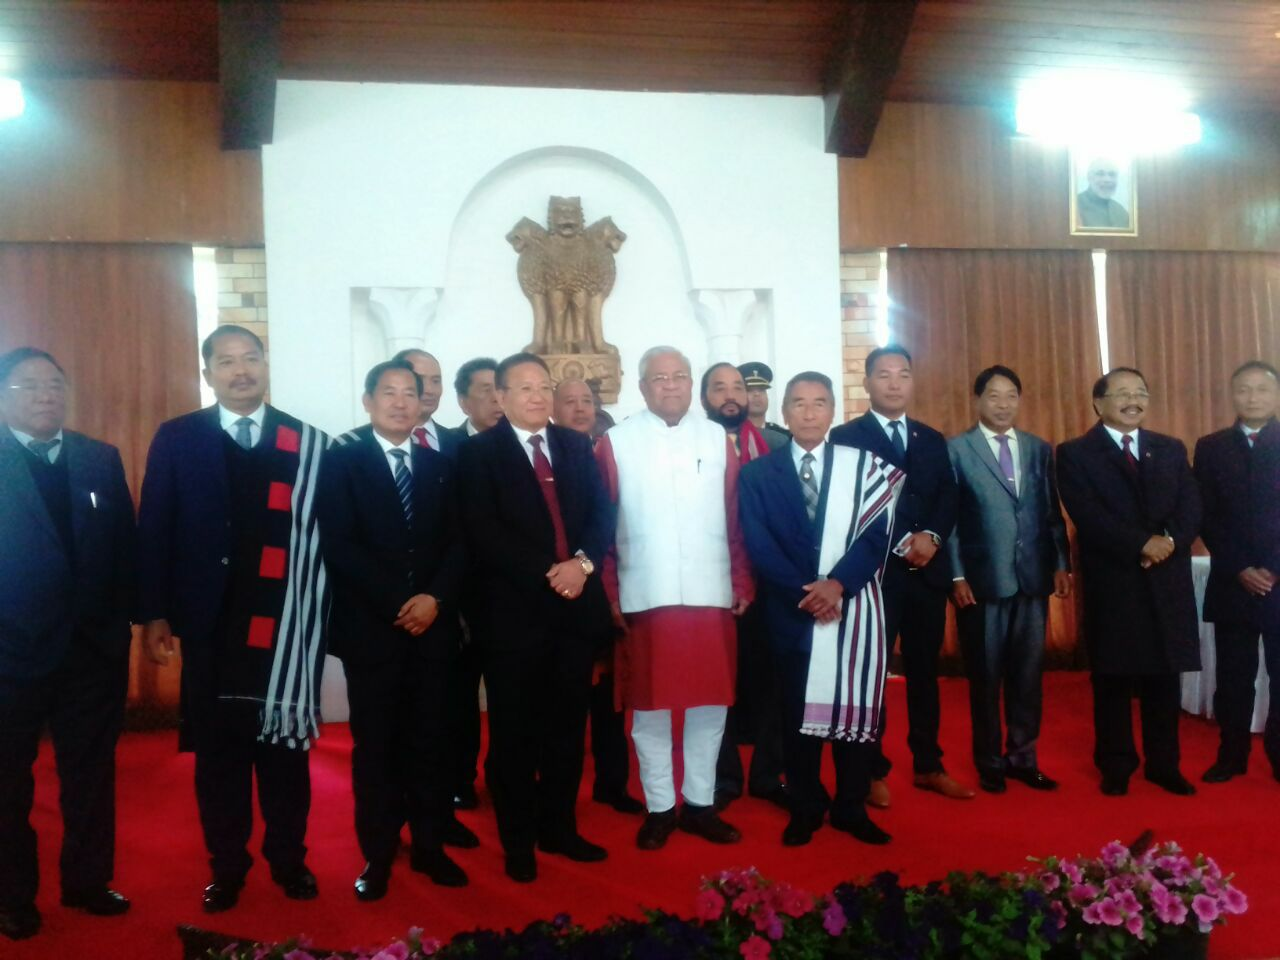 Chief minister Shurhozelie Liezeitsu and his cabinet pose with the governor of Nagaland. Credit: Facebook/We the Nagas